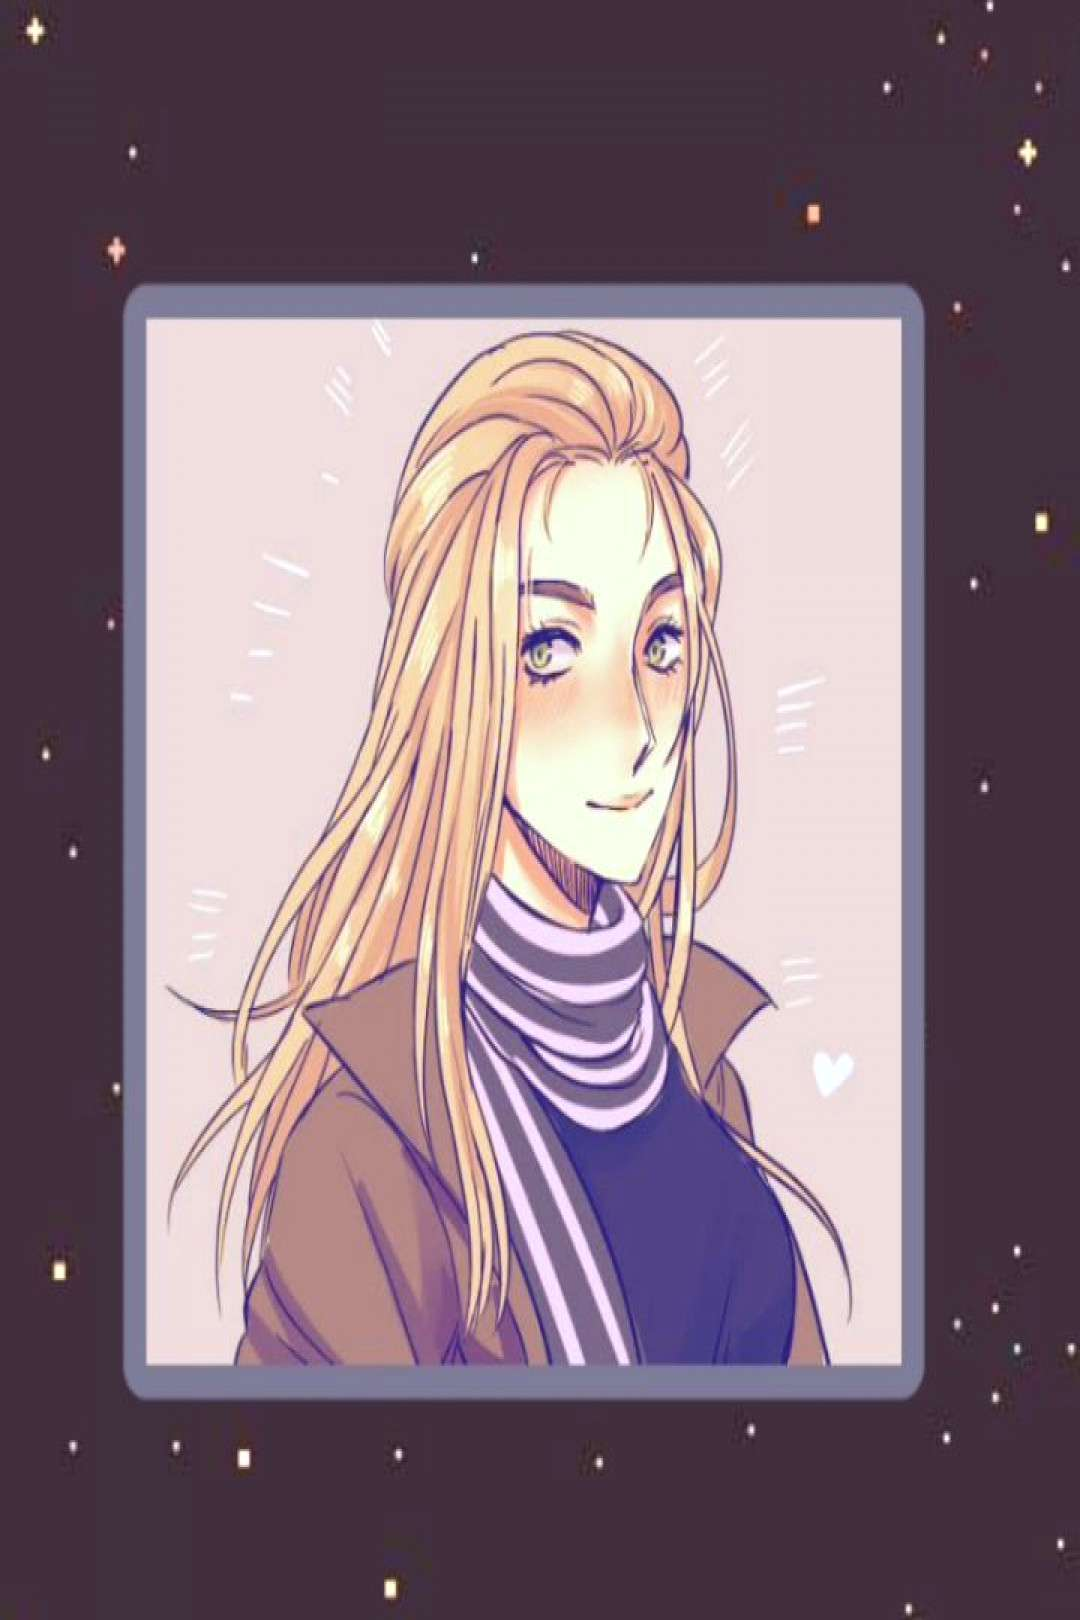 nyo netherlands - dt tagged ac - media hetalia tried practicing s